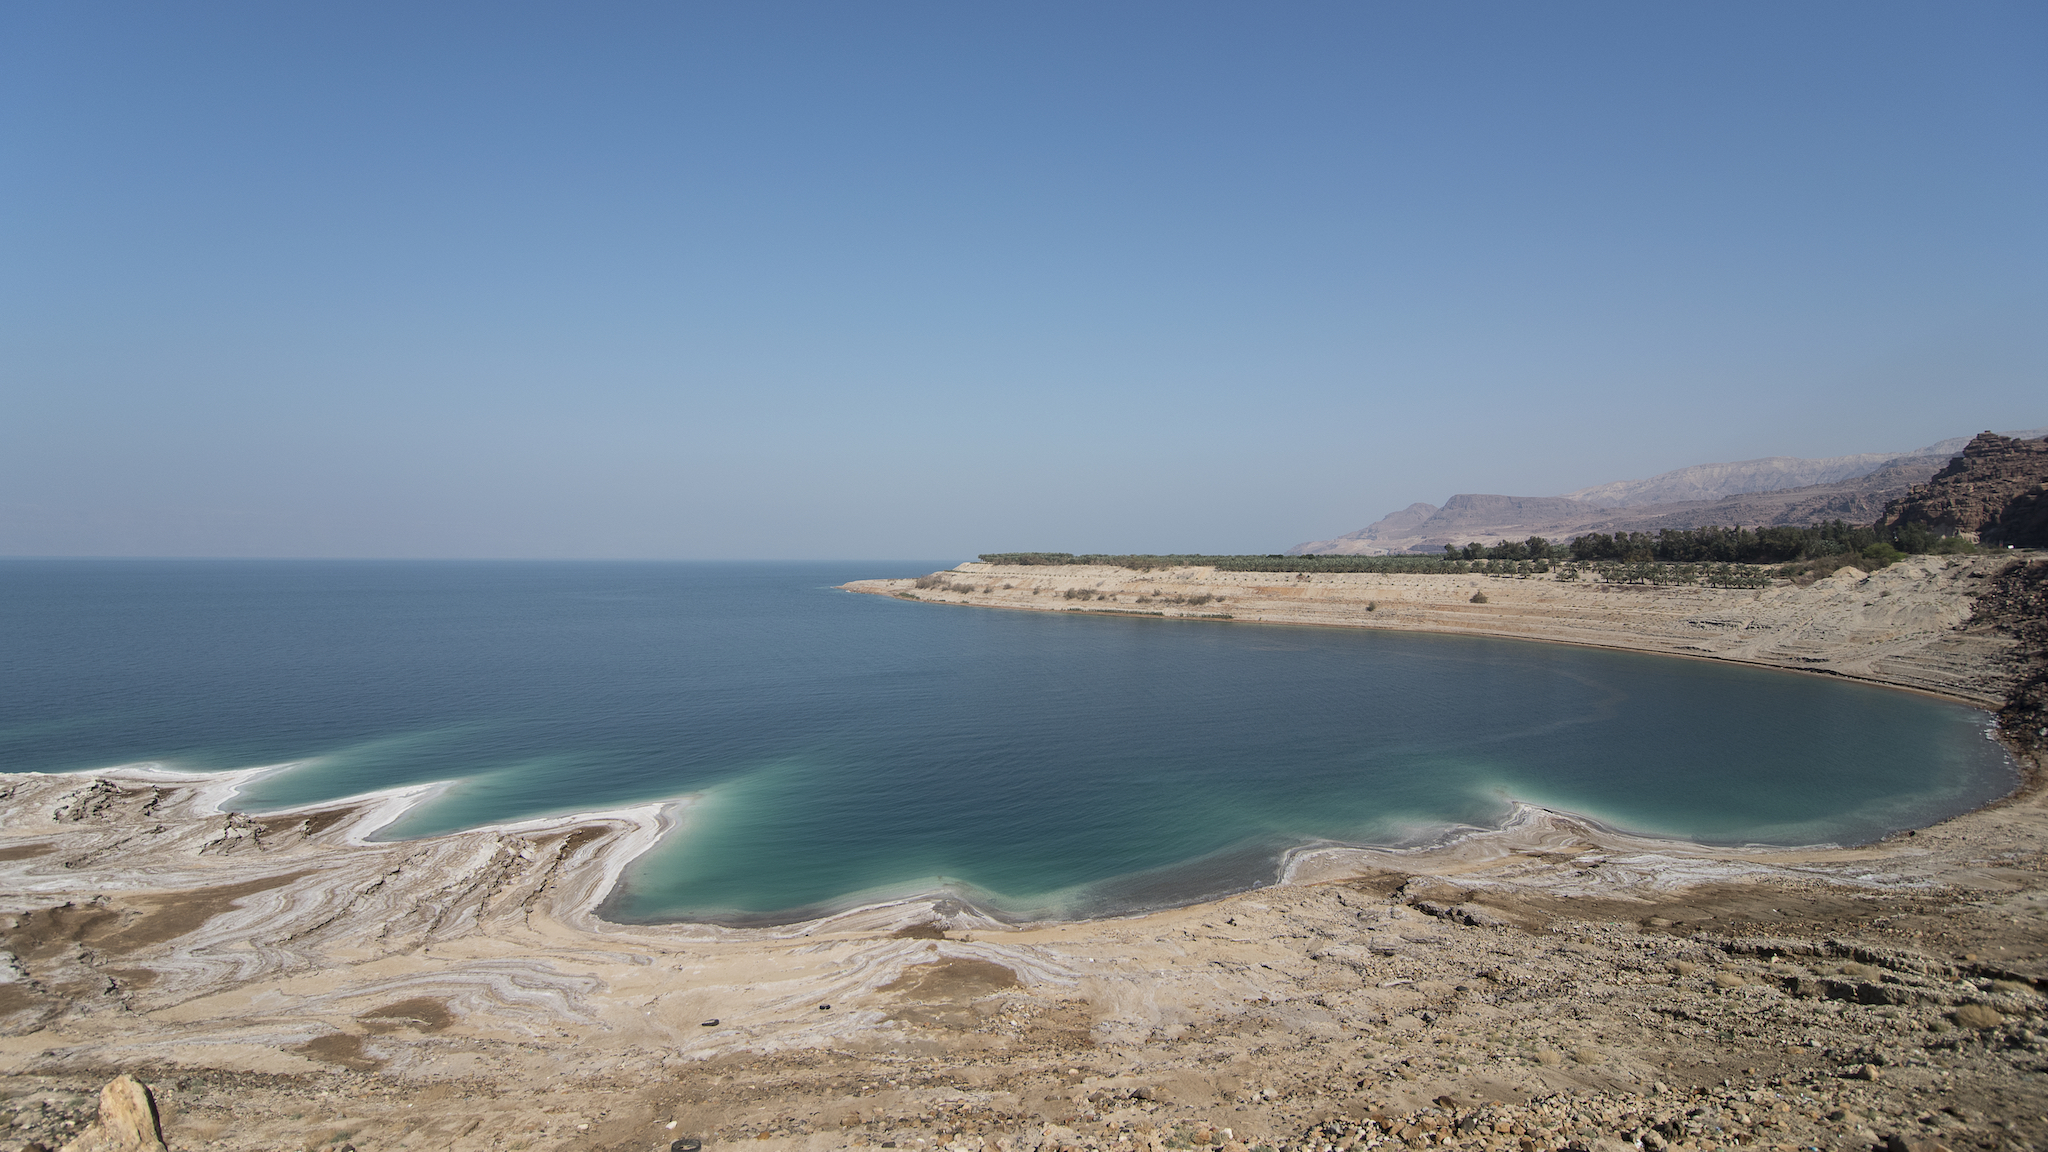 The Dead Sea is dying — NOVA Next